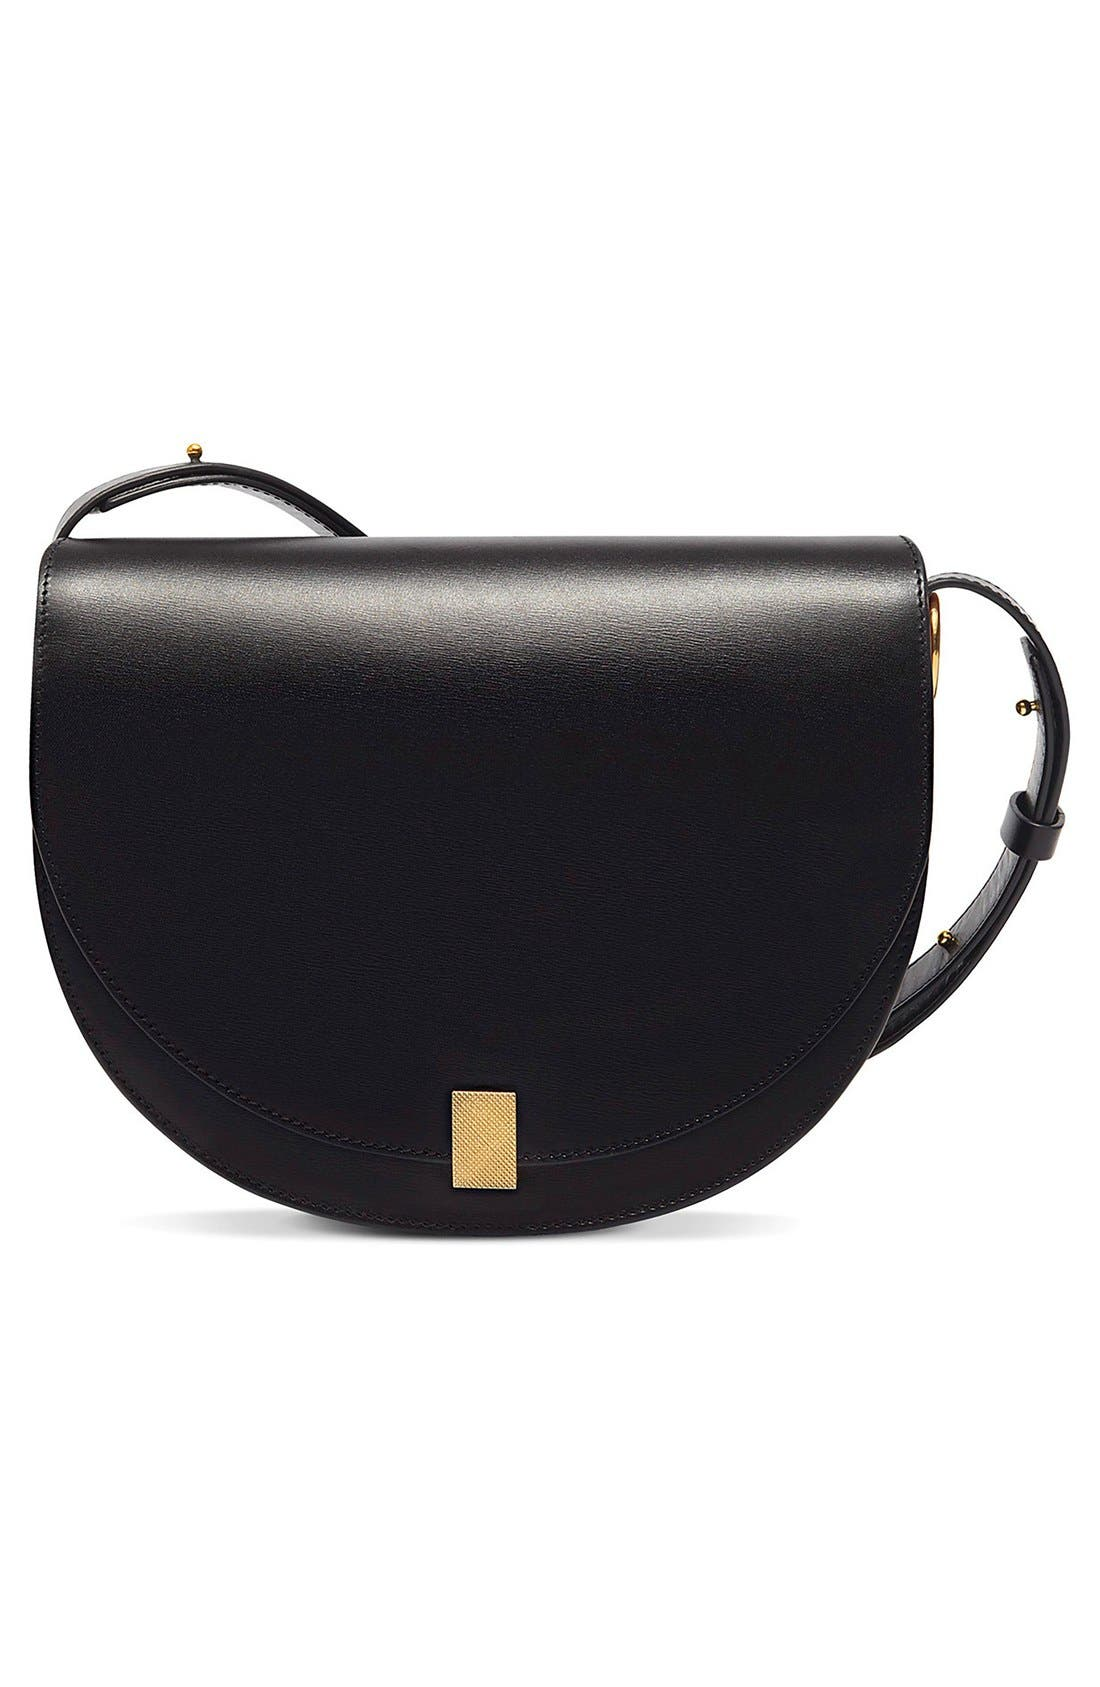 Victoria Beckham Half Moon Box Shoulder Bag